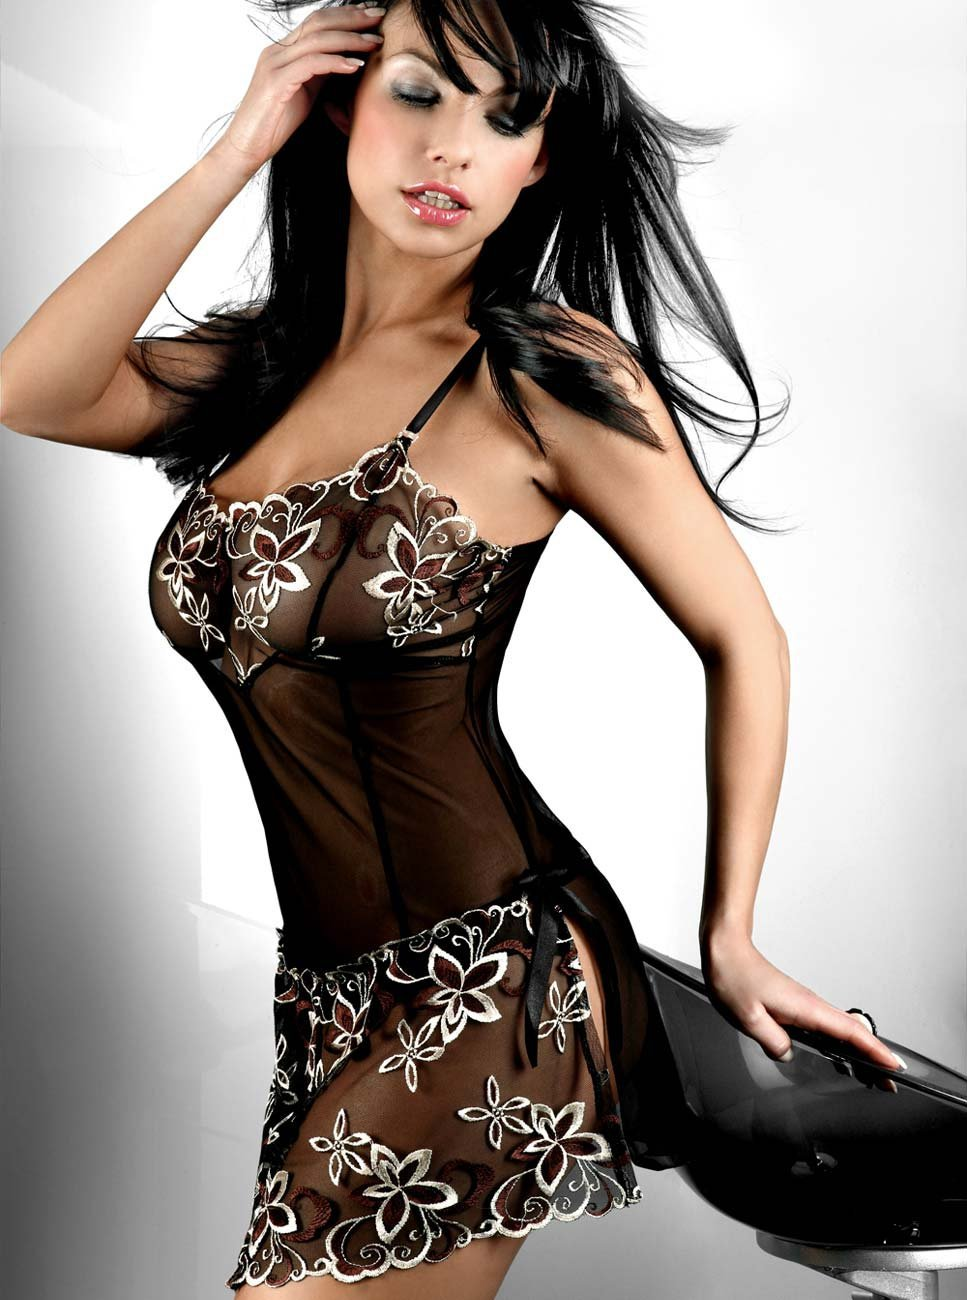 Peignoir Black Plus Size M L XL XXL <font><b>XXXL</b></font> XXXXL 4XL 5XL 6XL <font><b>Sexy</b></font> <font><b>Lingerie</b></font> <font><b>Babydoll</b></font> Front Open Nighty Chemise Dress Sleepwear image